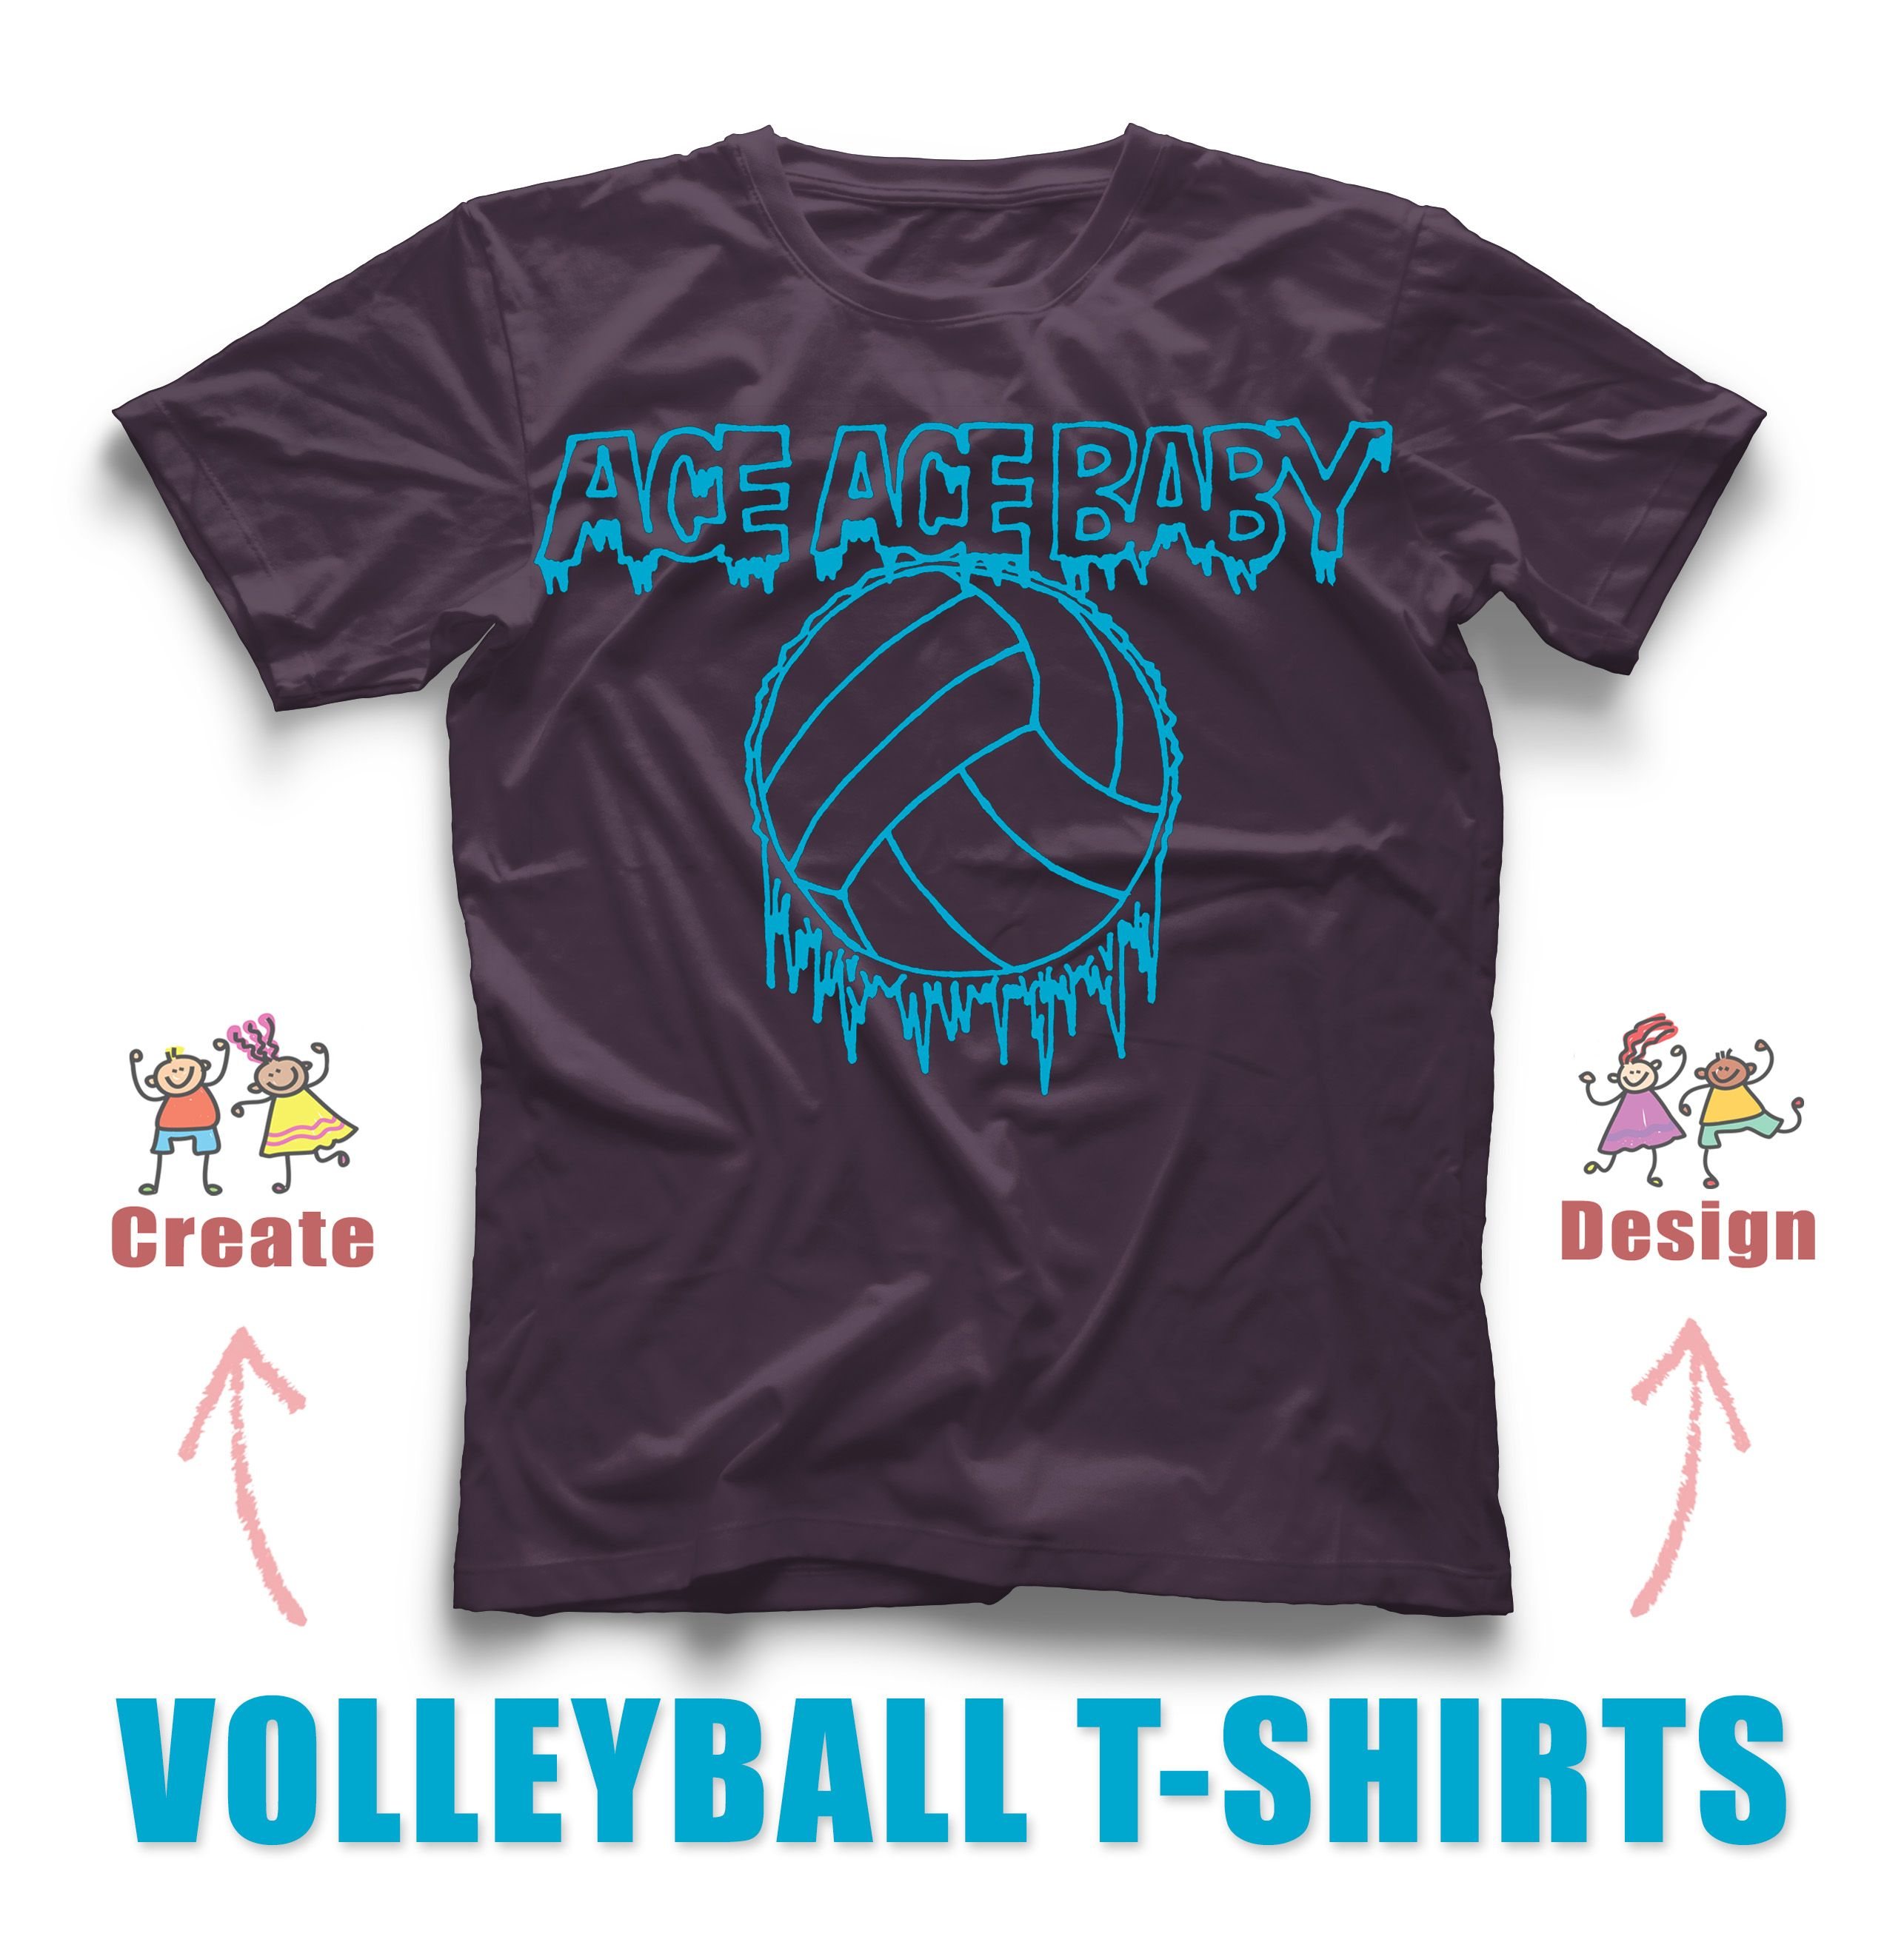 Ace Ace Ace Baby Volleyball Custom T Shirt Design Idea For Your Team Rushordertees Com T Shirt Design Template Shirt Designs Team T Shirts